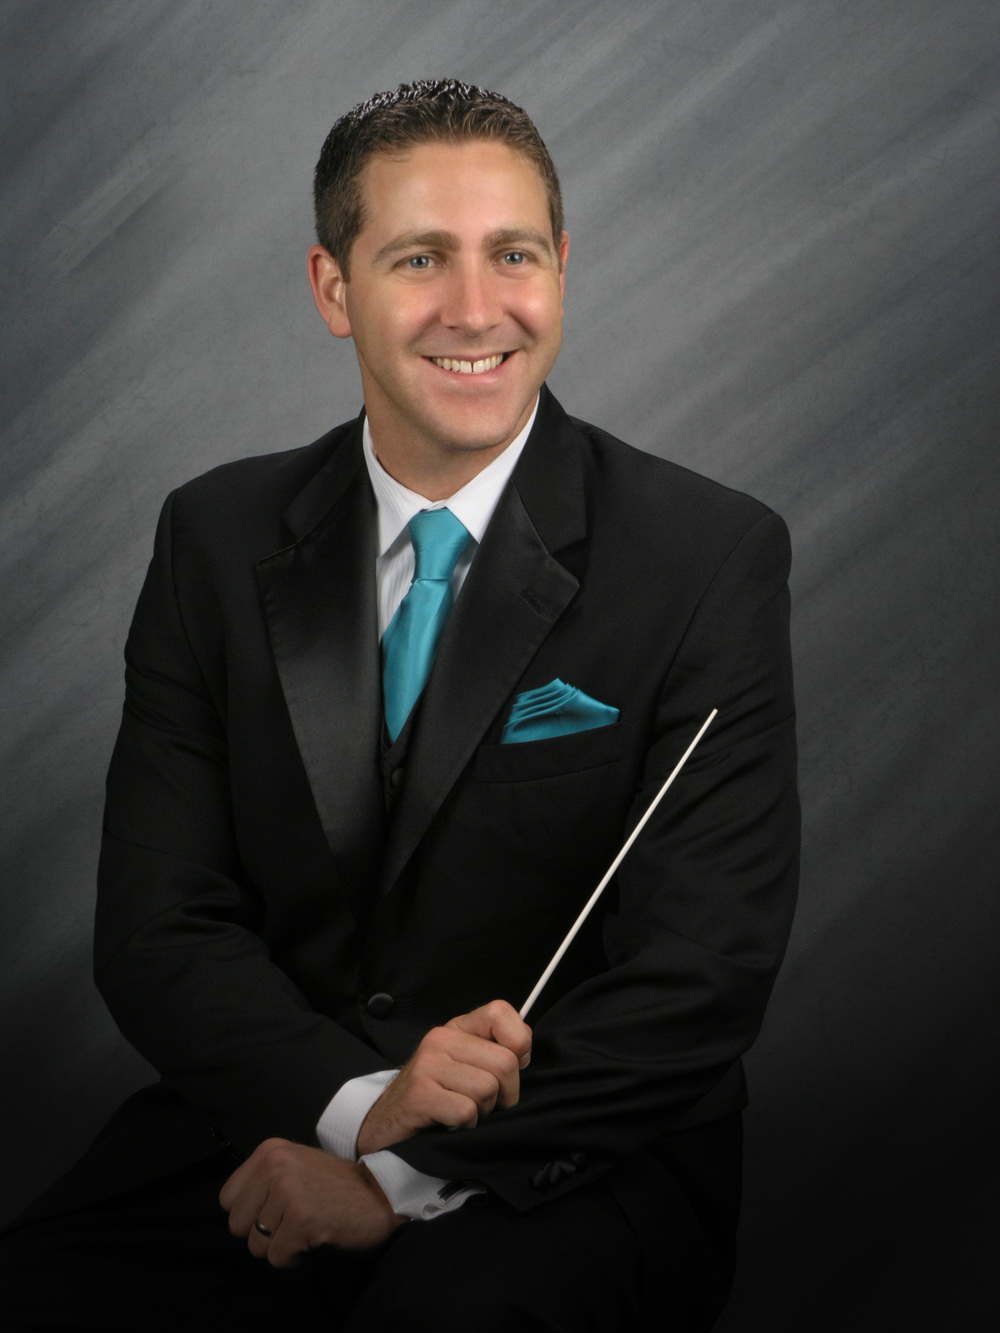 Thomas C. Dougherty - Director of Bands (Jensen Beach High School)